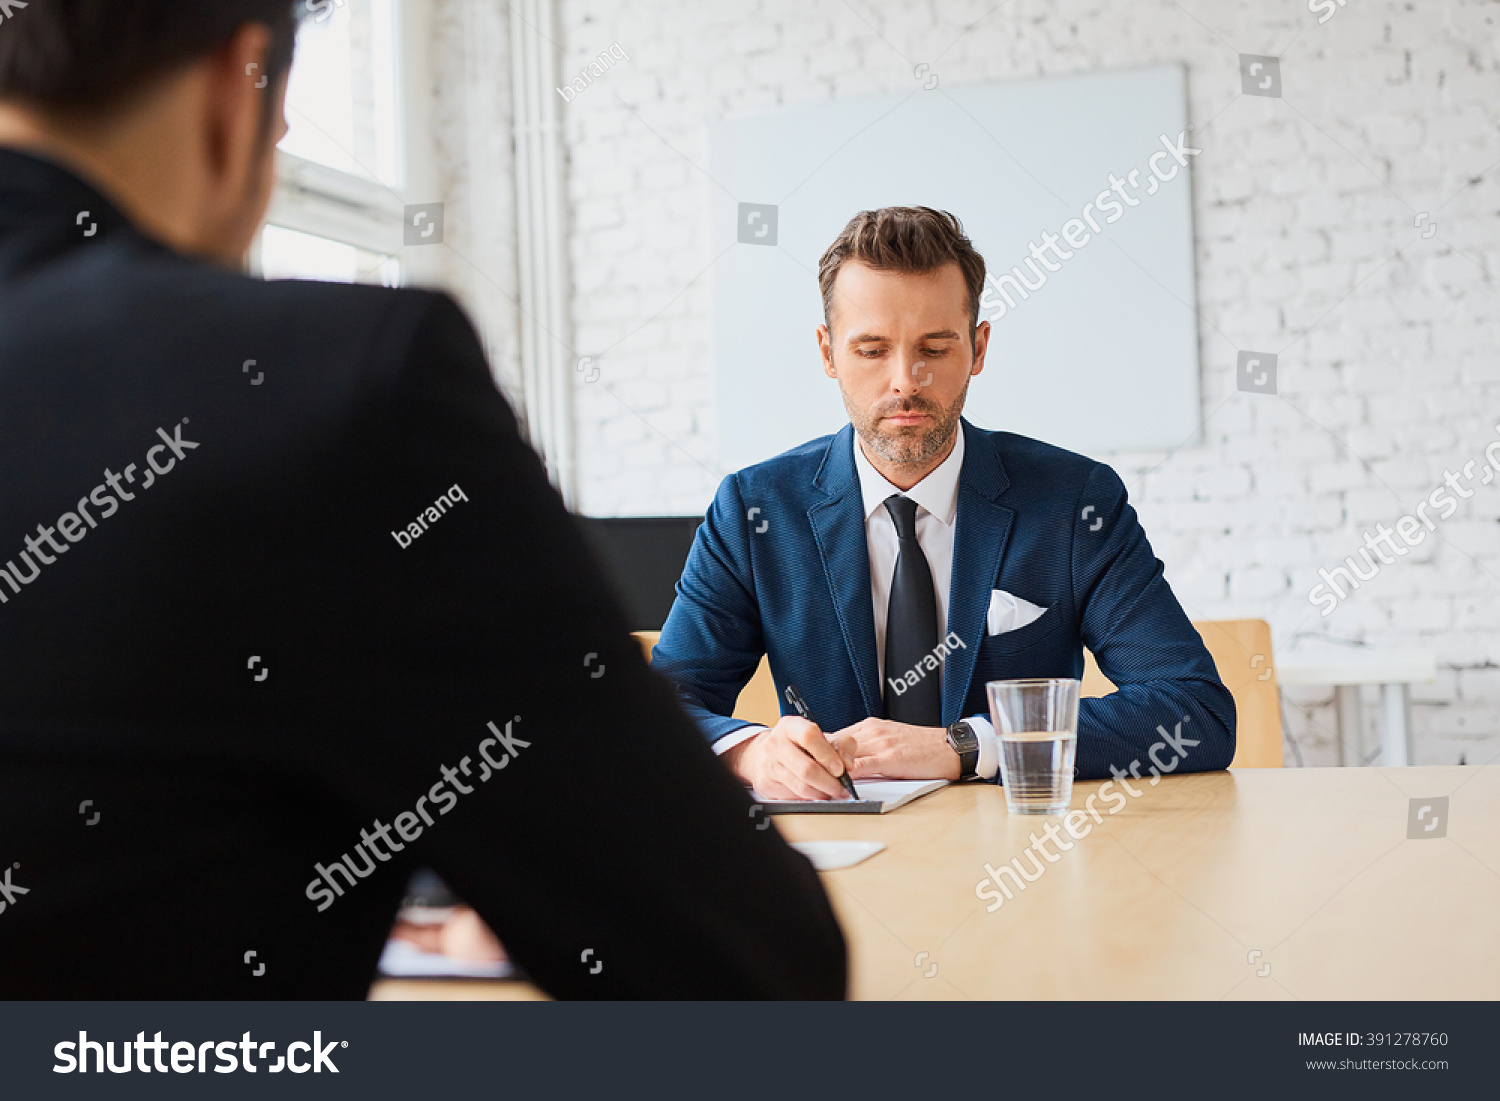 royalty job interview recruiter writing down  job interview recruiter writing down candidate answers 391278760